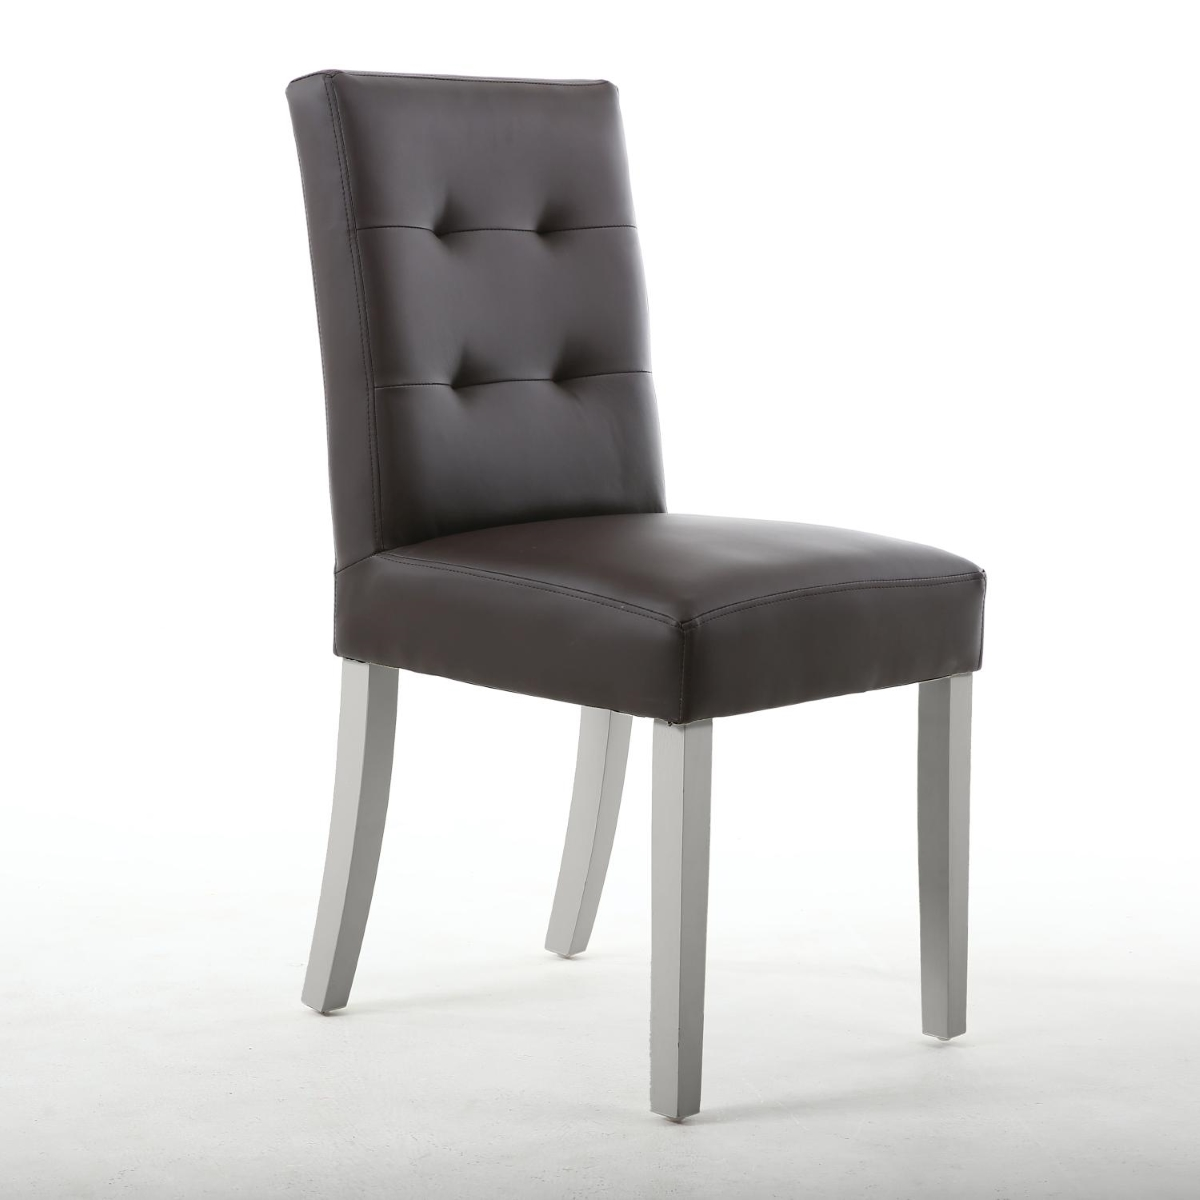 Dining Chairs Shankar Espresso Style 010 Brown Bonded  : shankarespressodiningchair010 07 12 06 011 1200x1200 from www.121homefurniture.co.uk size 1200 x 1200 jpeg 218kB